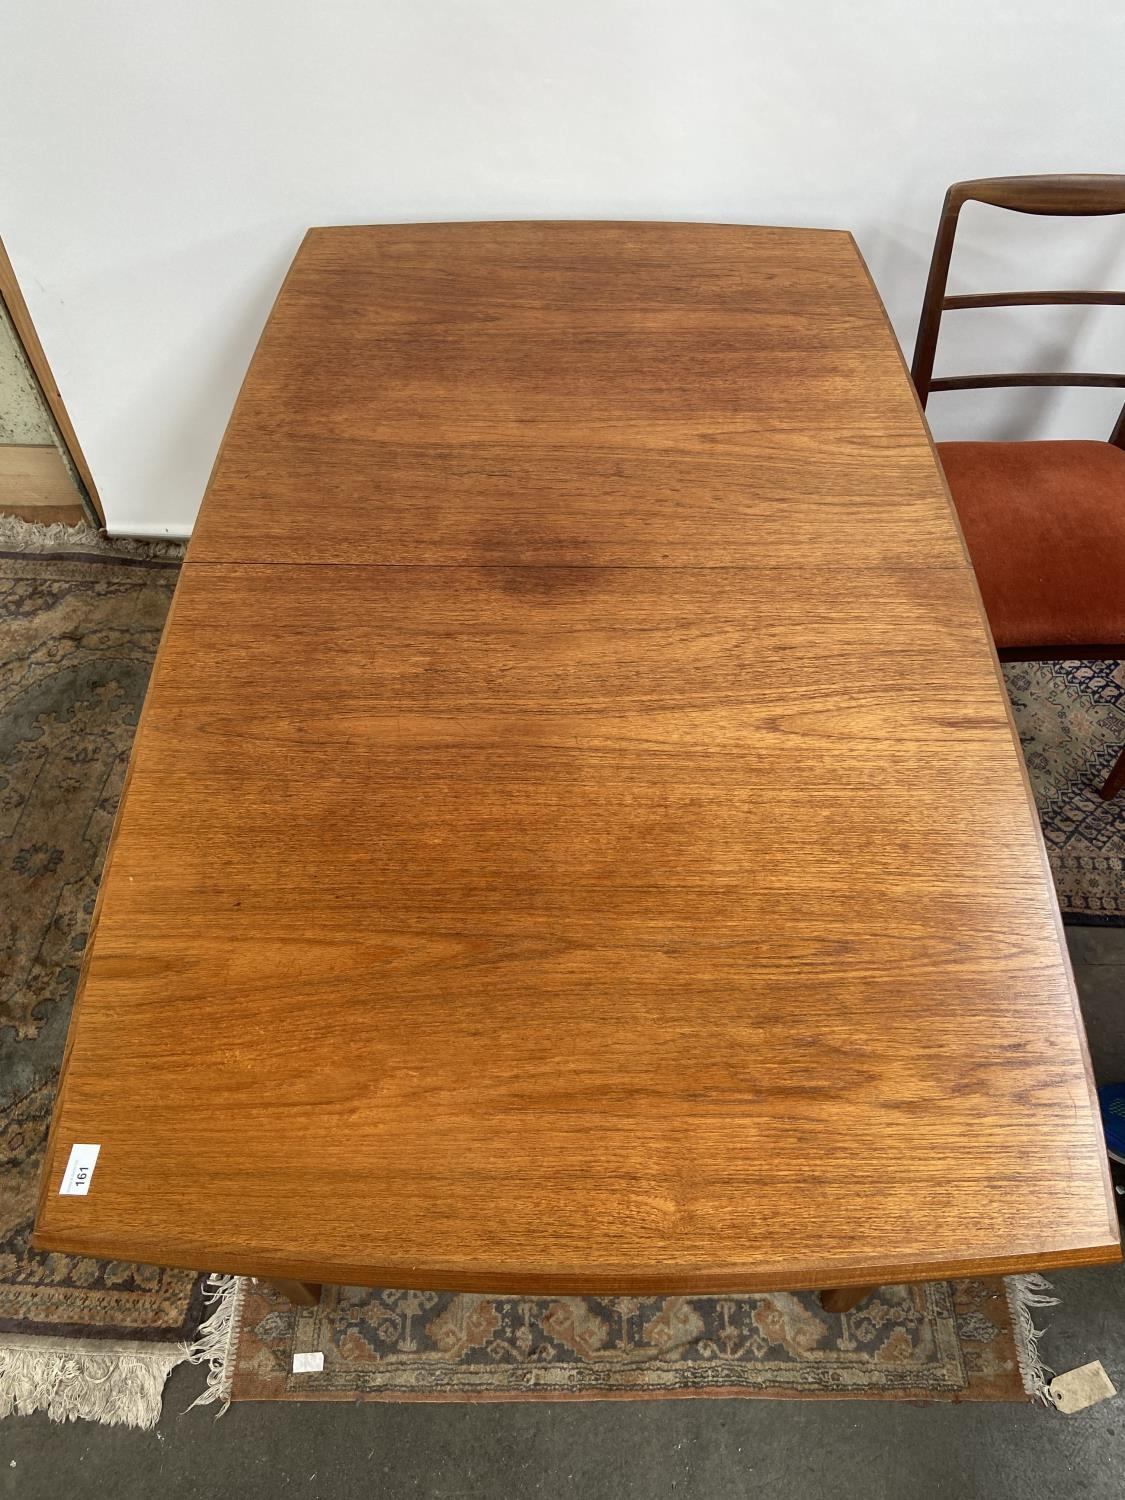 A Retro mid century teak dining table and four matching chairs produced by Vanson. [Table extended - Image 13 of 13